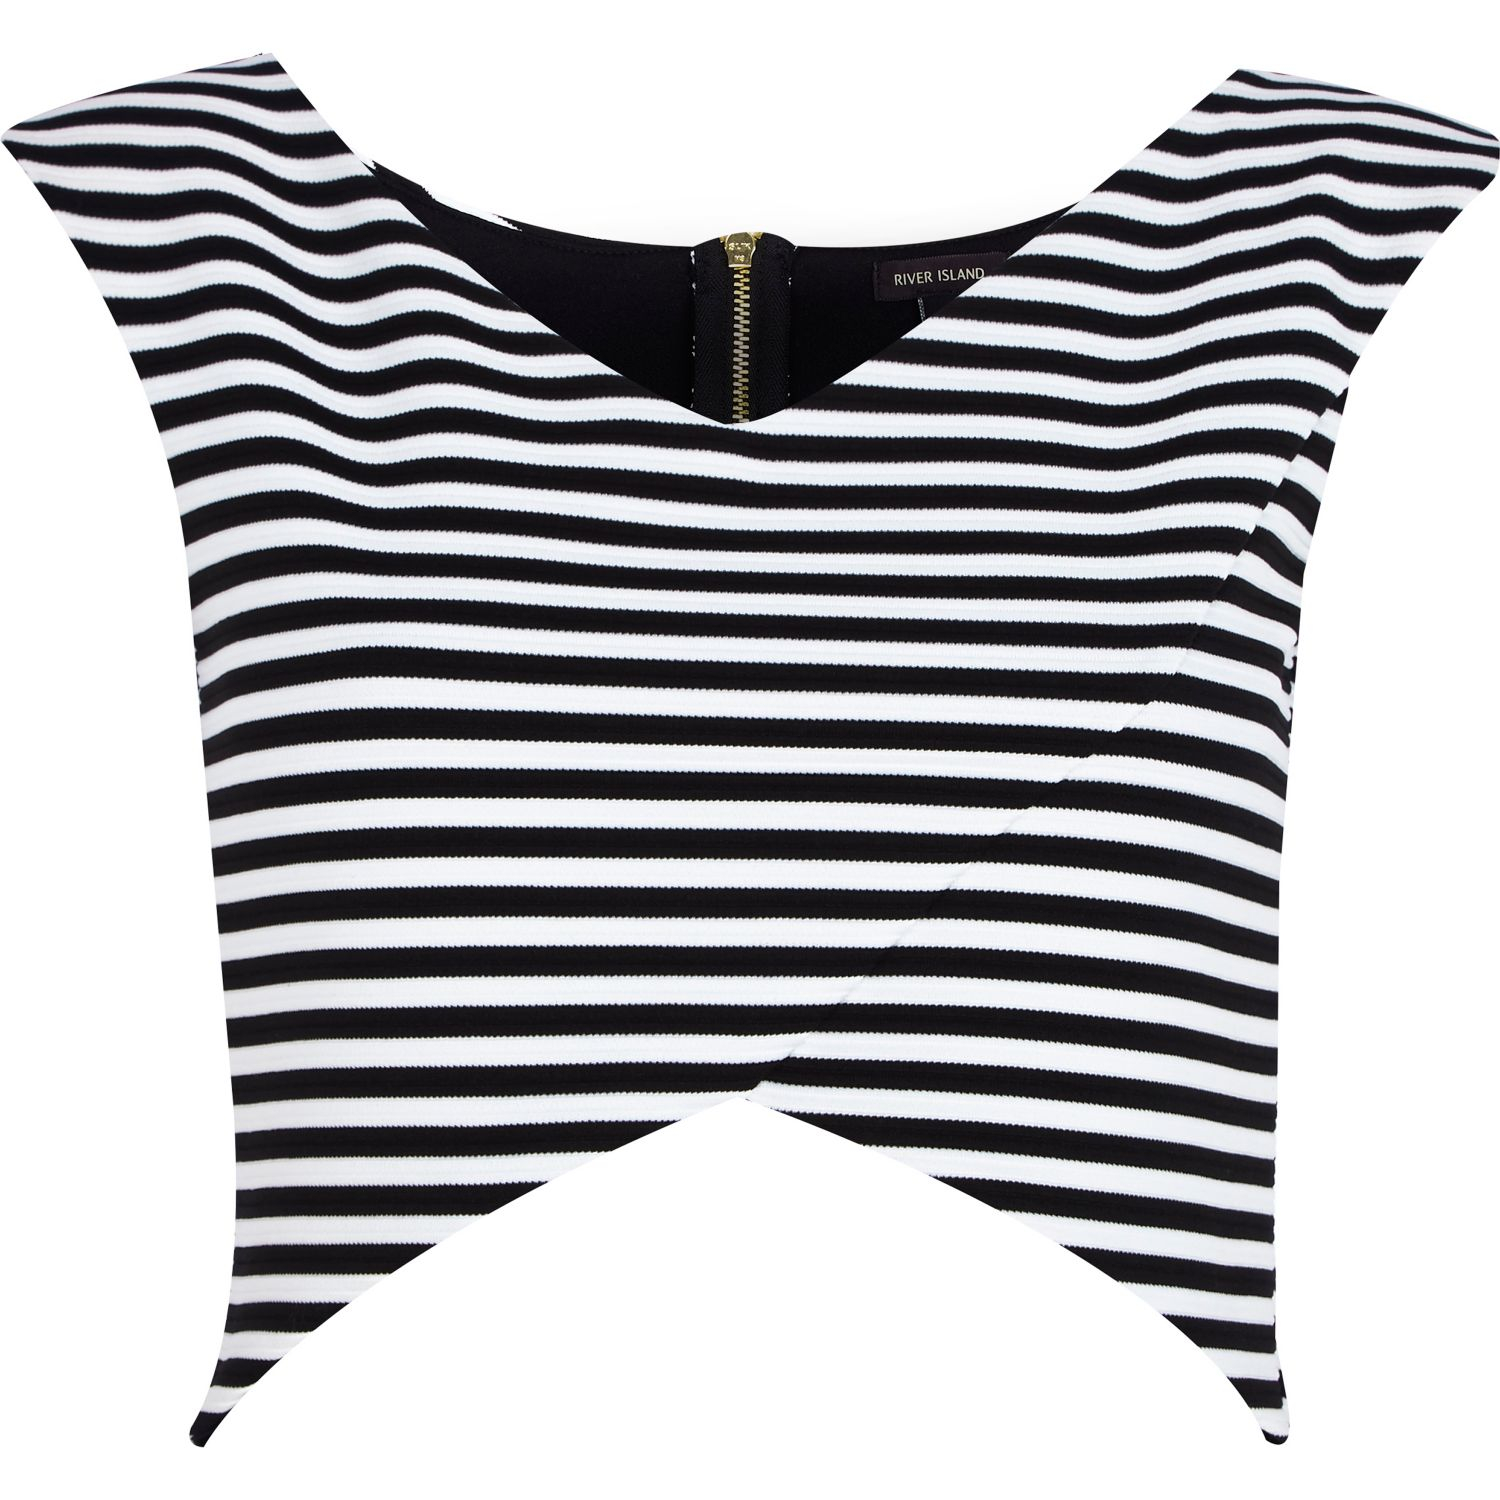 {breton stripes} Striped top outfit Striped tops Striped Shirt Outfits White t shirt dress Black and white shirt Black & White Stripes BLACK AND WHITE STYLE Navy stripes Forward One can never have too many striped tees // lesbian a la mode.